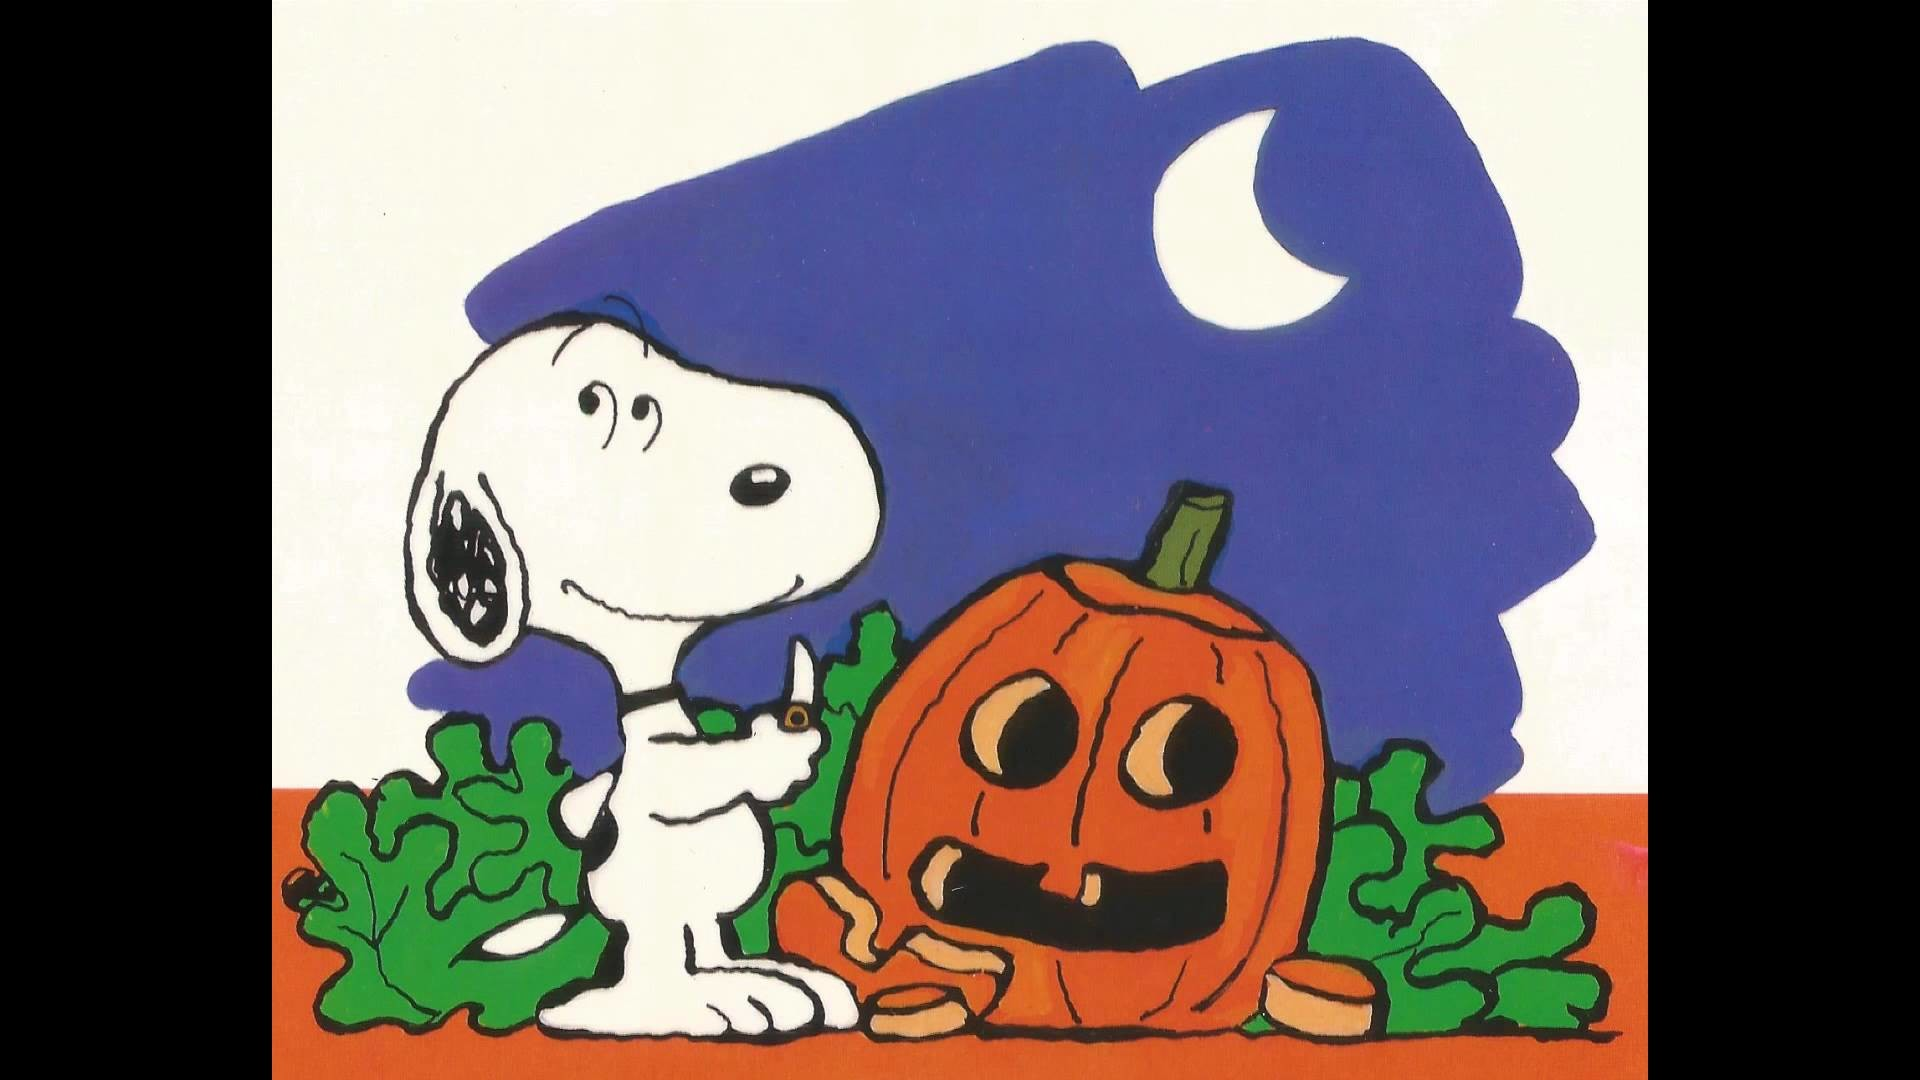 1920x1080 Snoopy: The Great Pumpkin